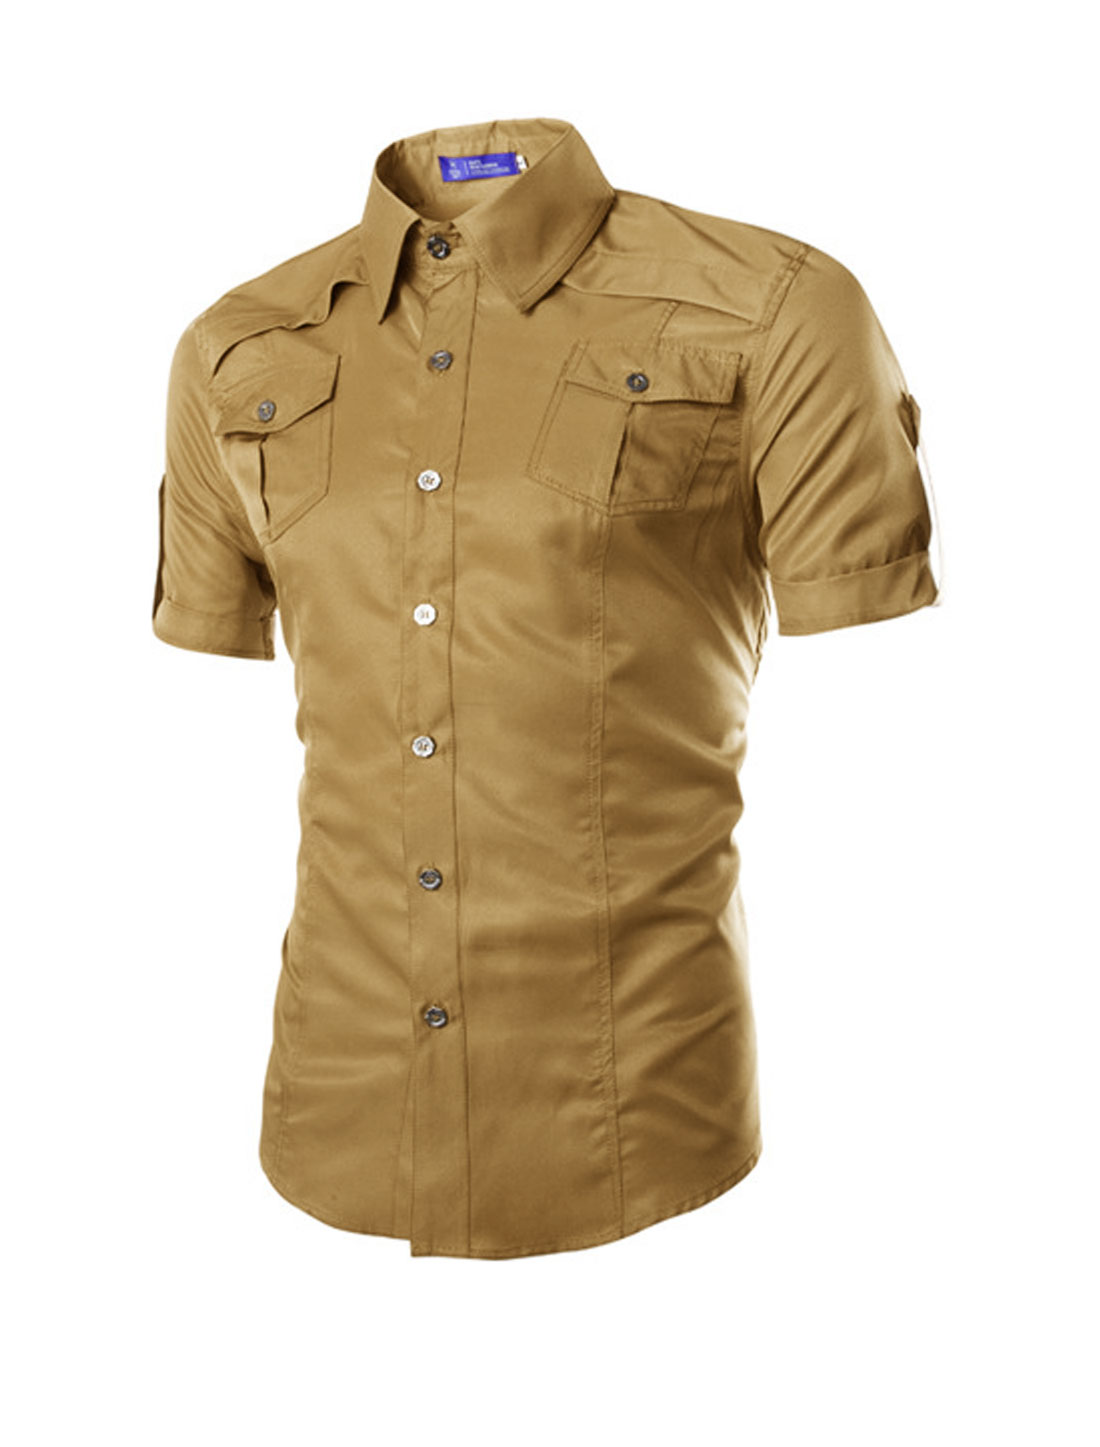 Man Short Sleeves Flap Pockets Button Down Shirts Camel M